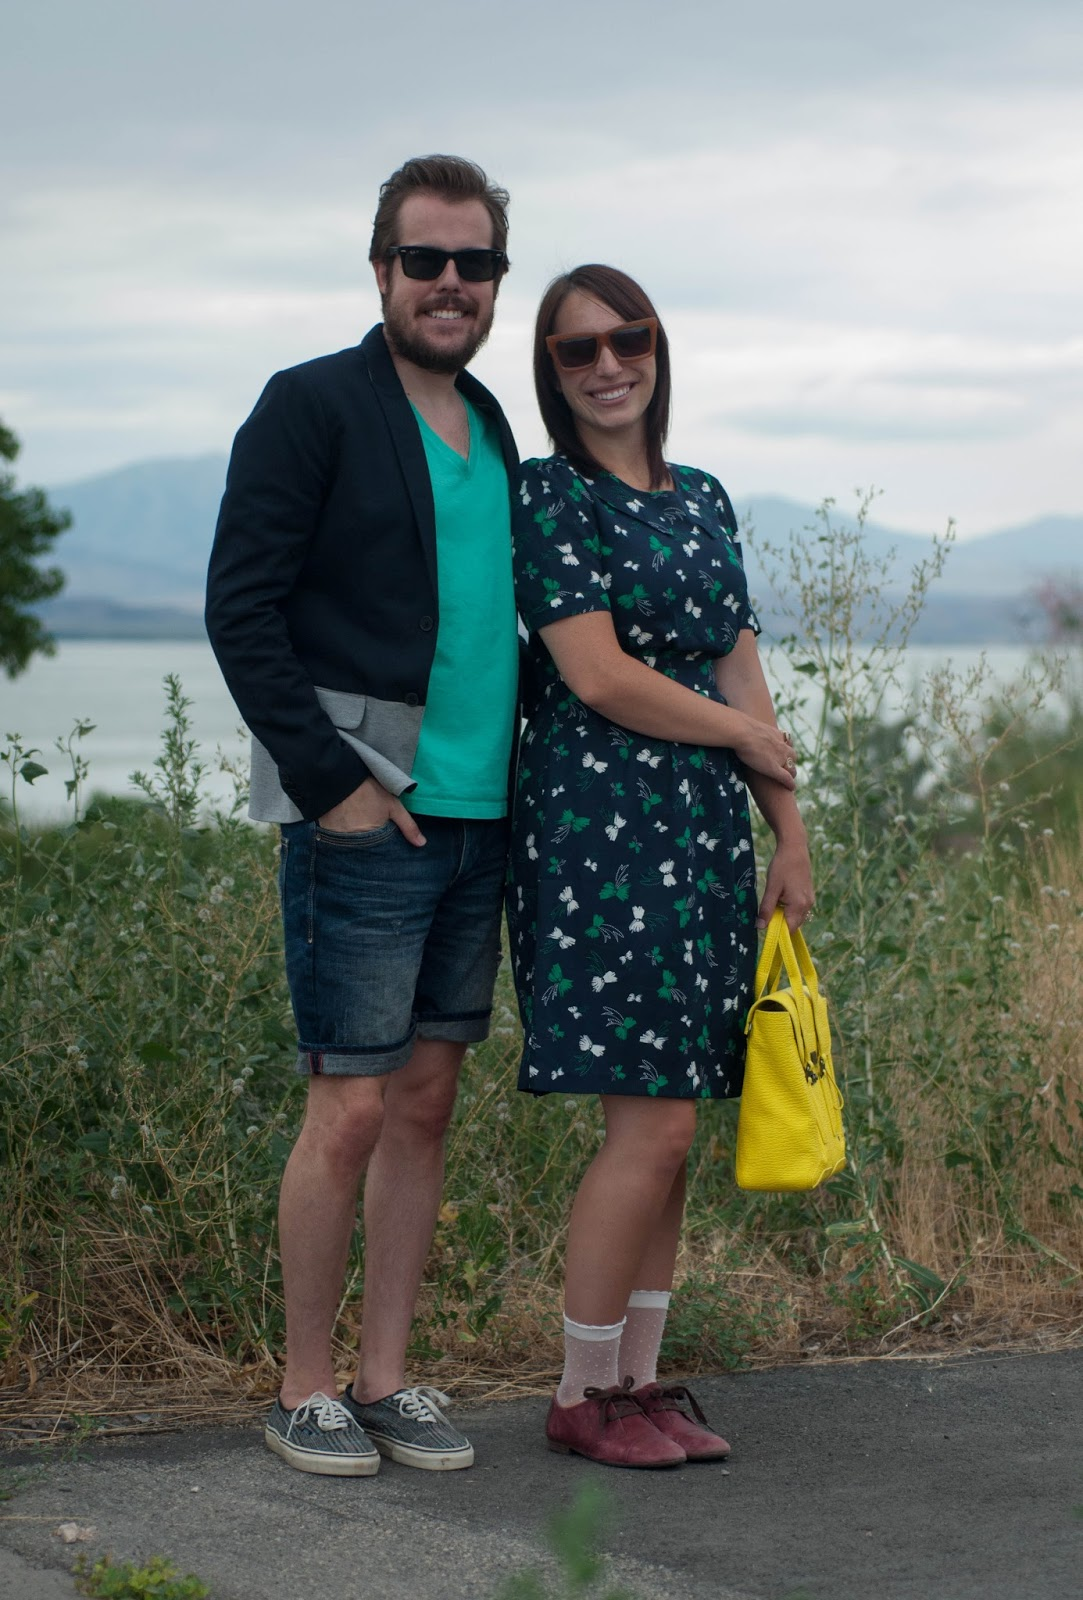 style blog, couples style, ootd, zara, karen walker, karen walker bow dress, karen walker sunglasses, ray ban sunglasses